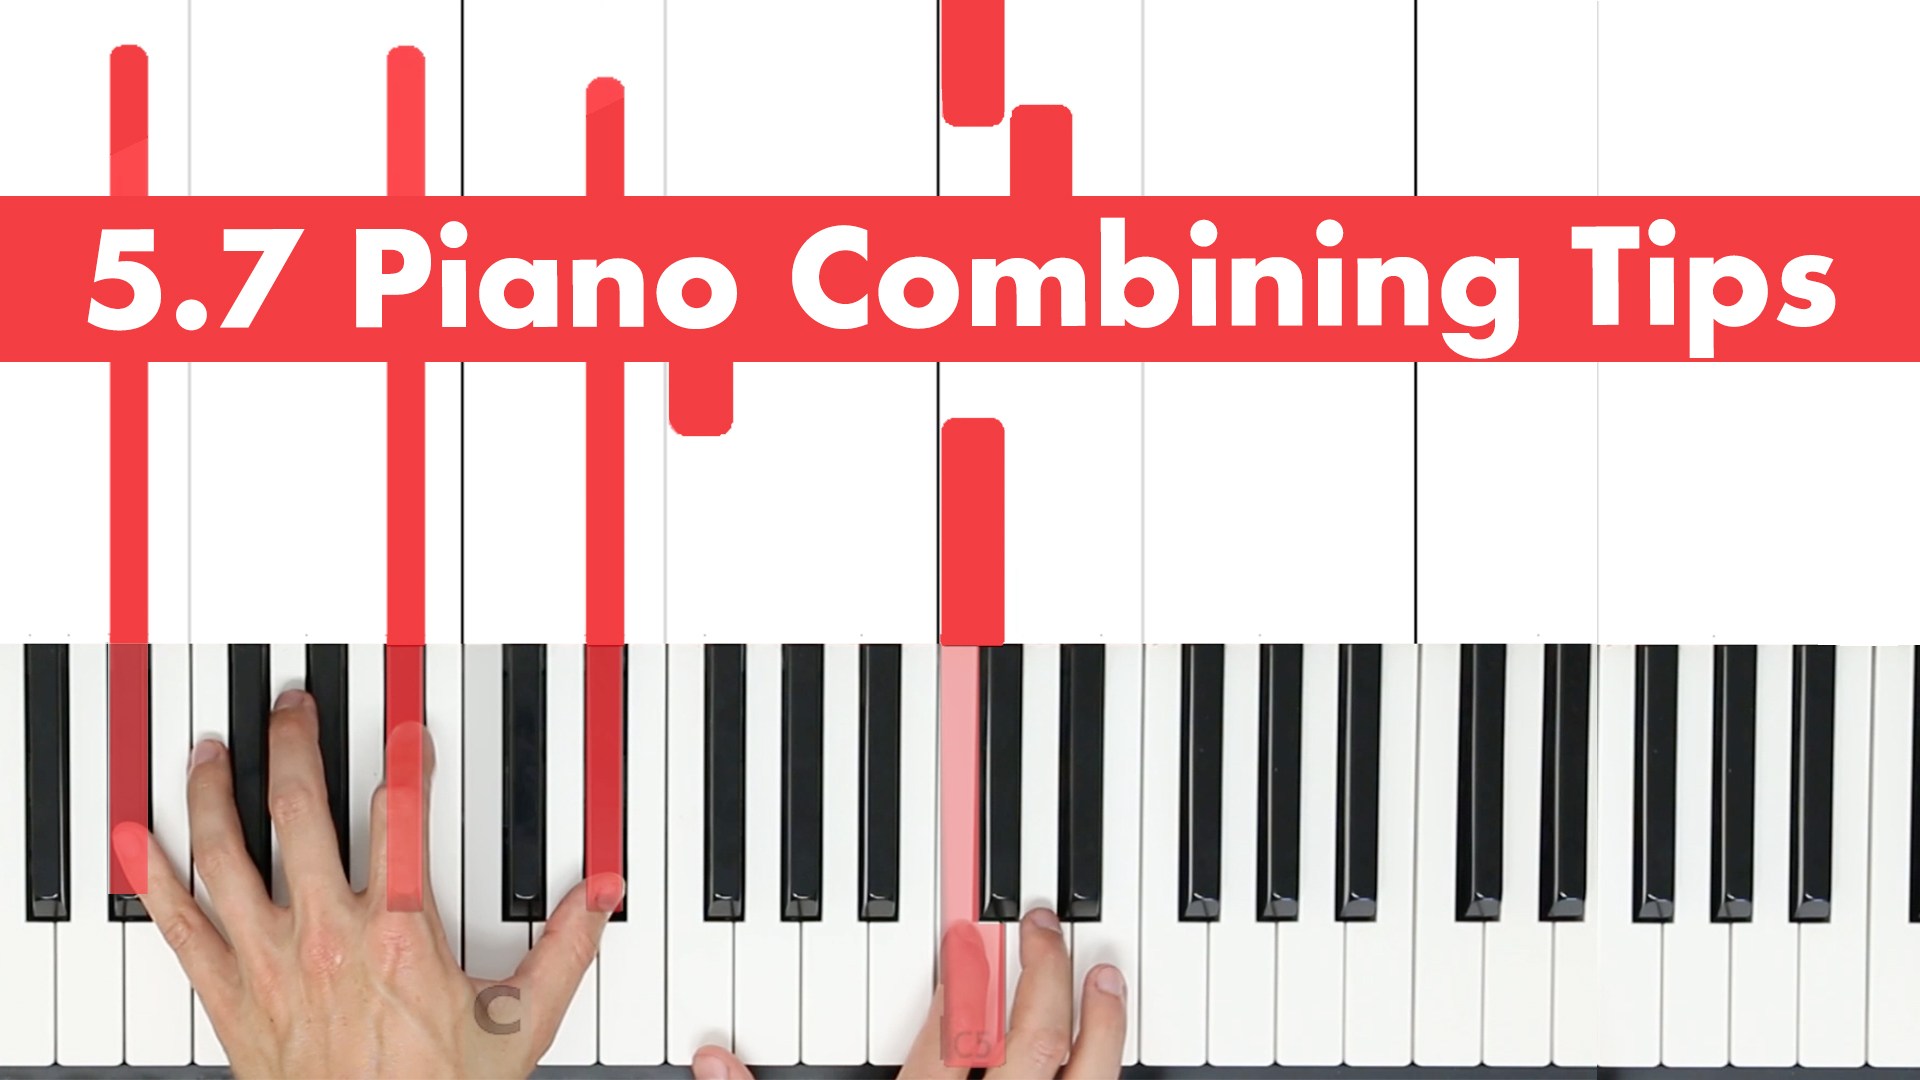 5.7 Piano Combining Tips